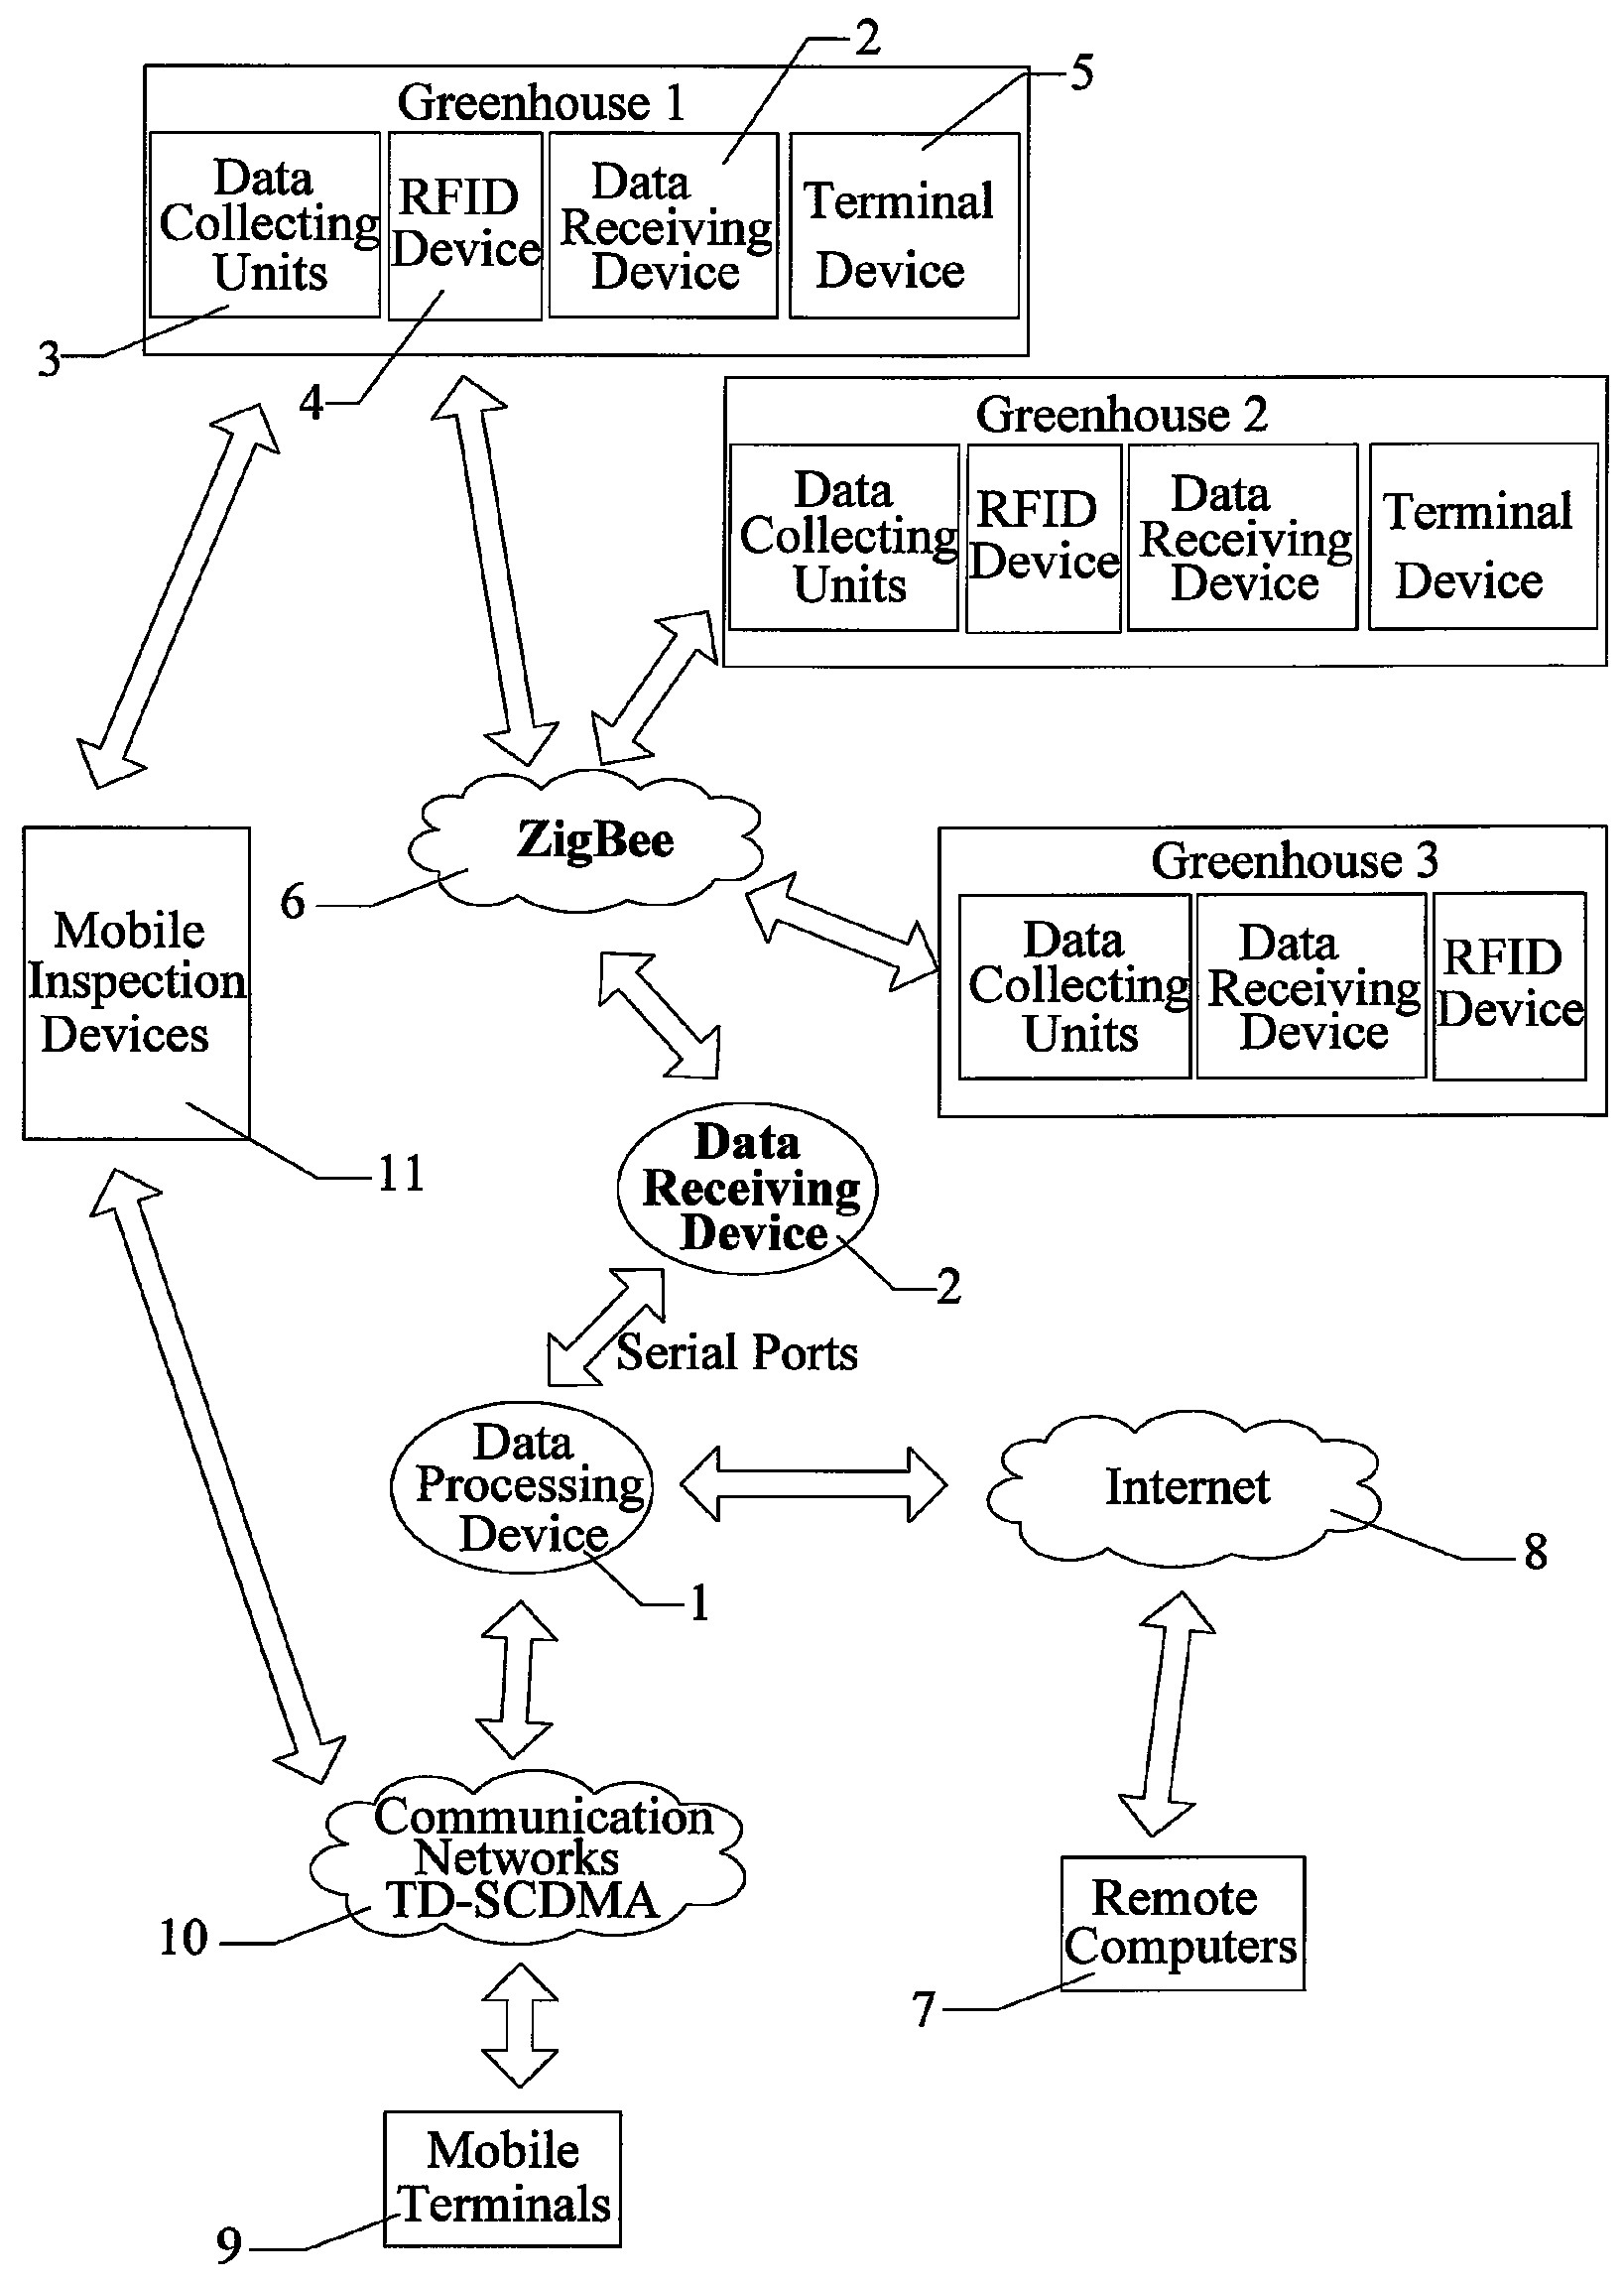 Overall architecture of the patent inventions and its integration into a ZigBee network